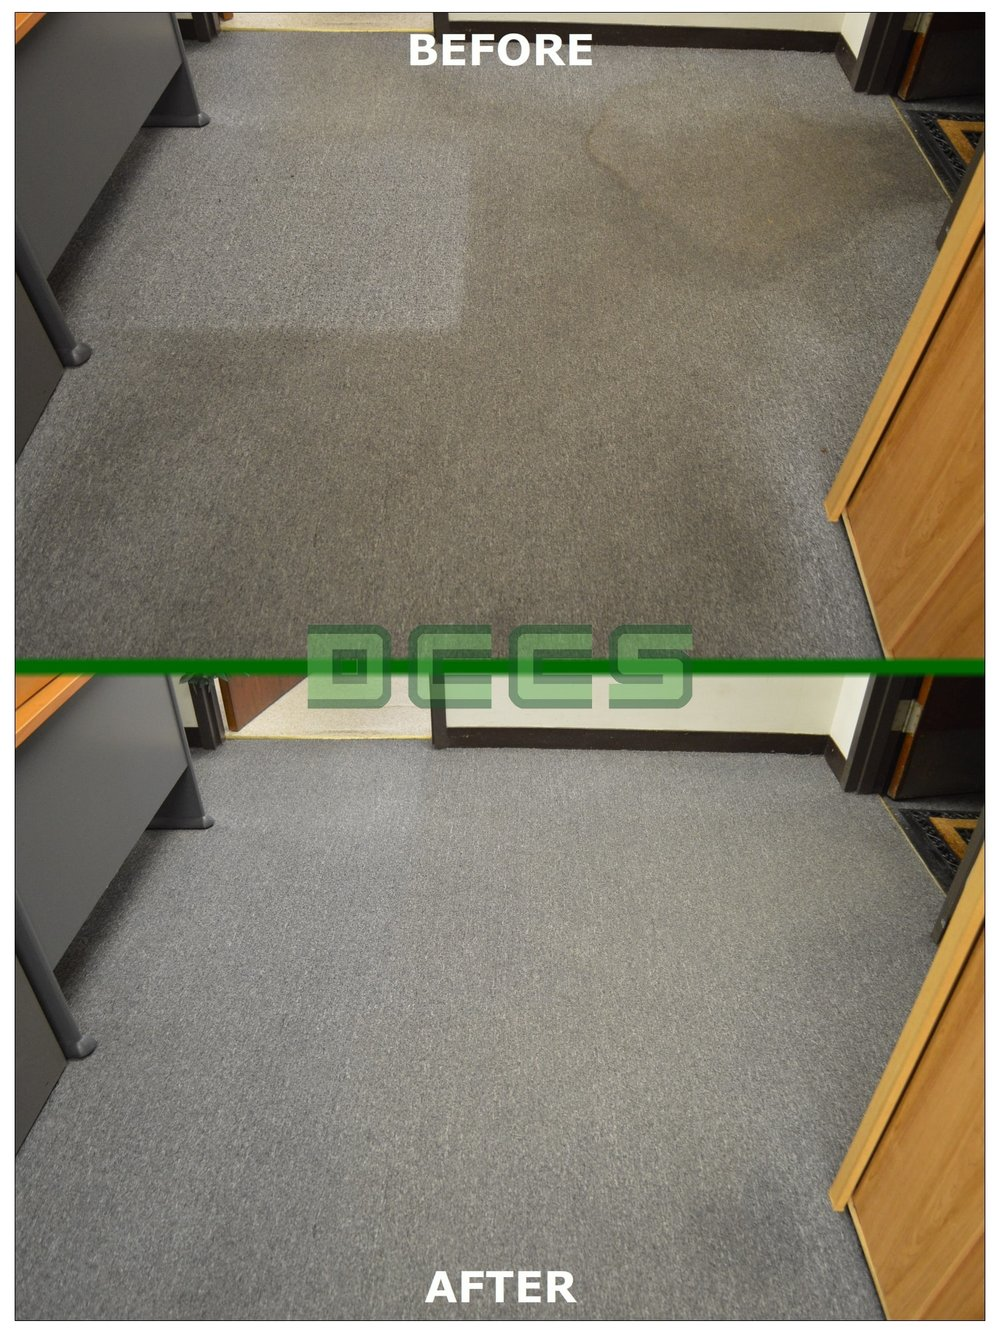 Why throw money away for a new carpet? Our carpet cleaning method will leave your carpet looking new again